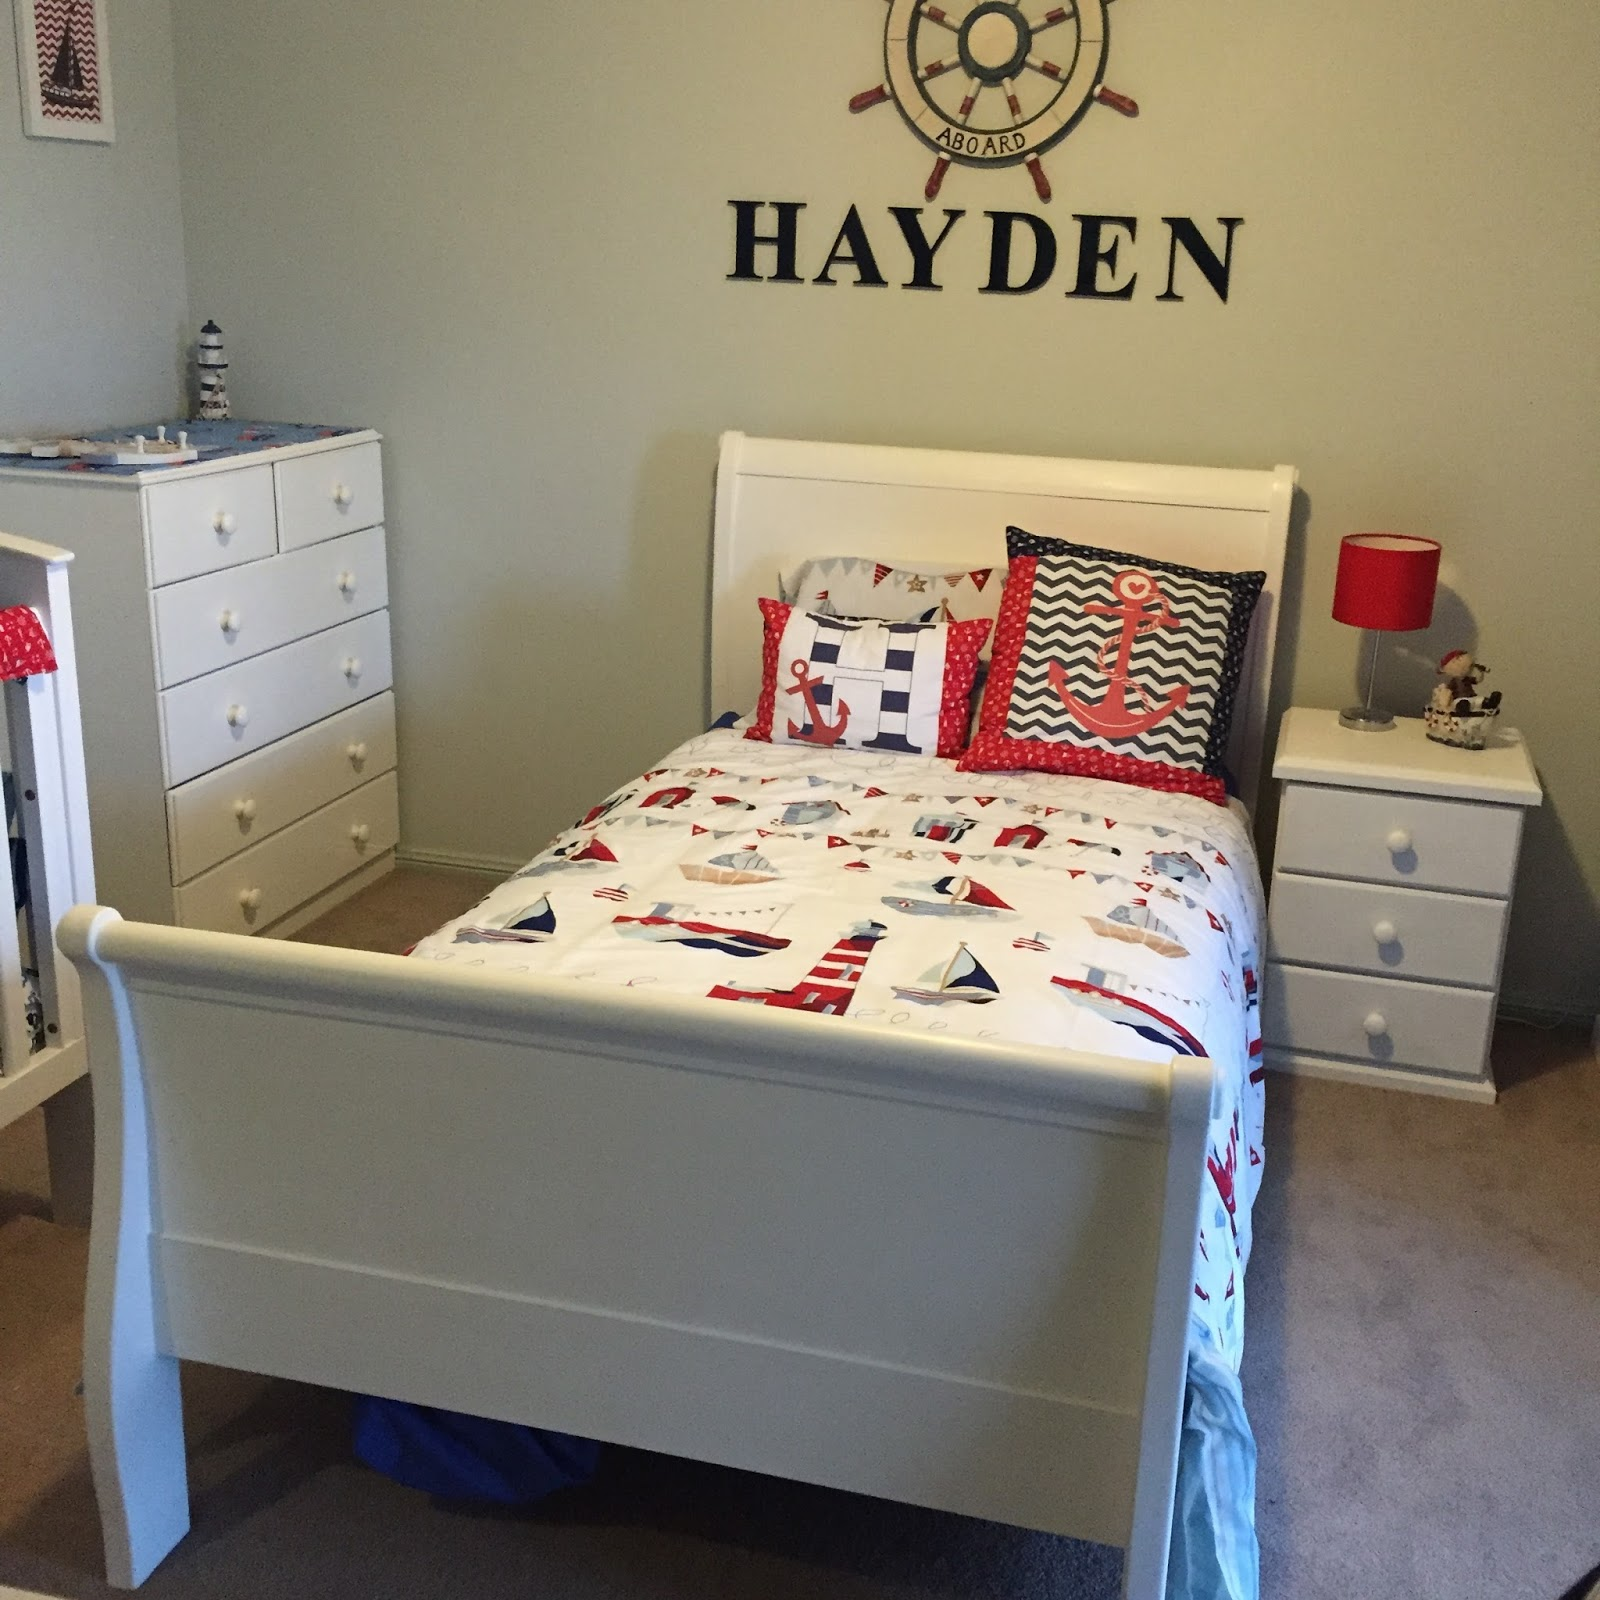 Lola 39 S Garden Made By Krystle Furnishing My Sons Bedroom With Second Hand Furniture And